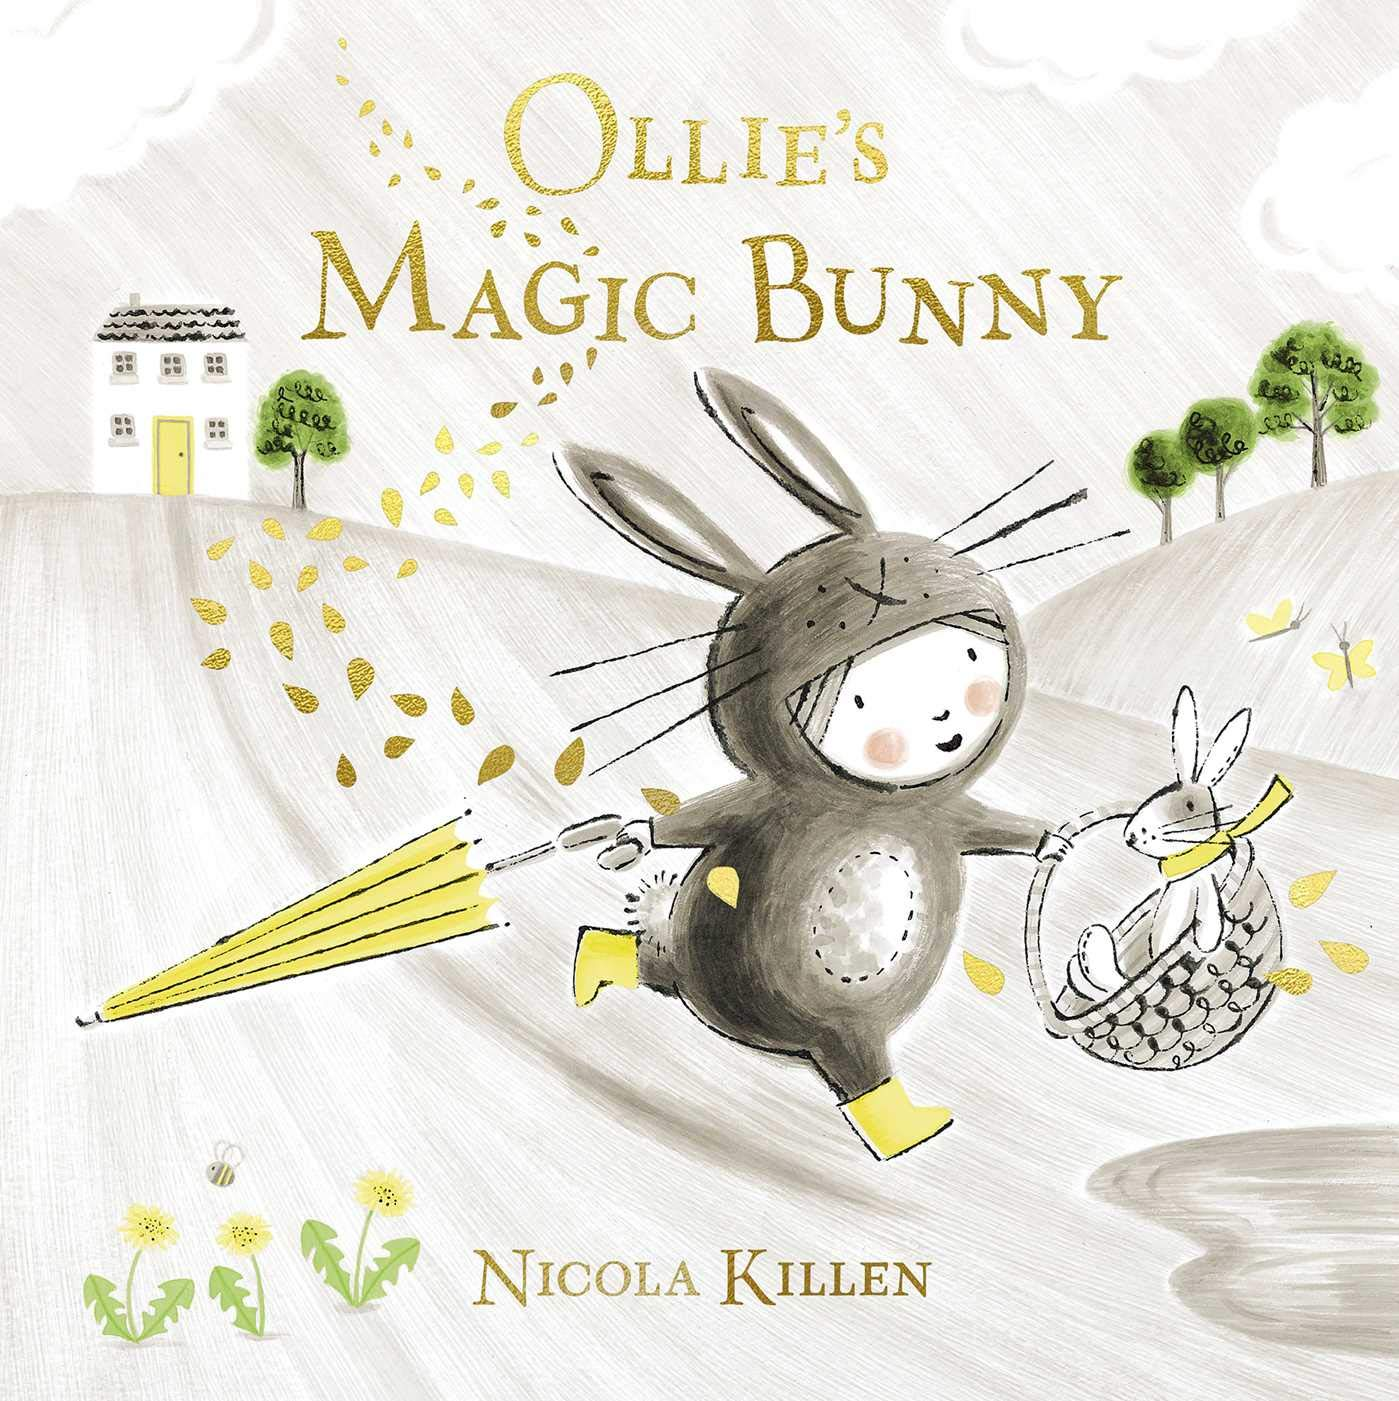 Ollies Magic Bunny by Nicola Killen